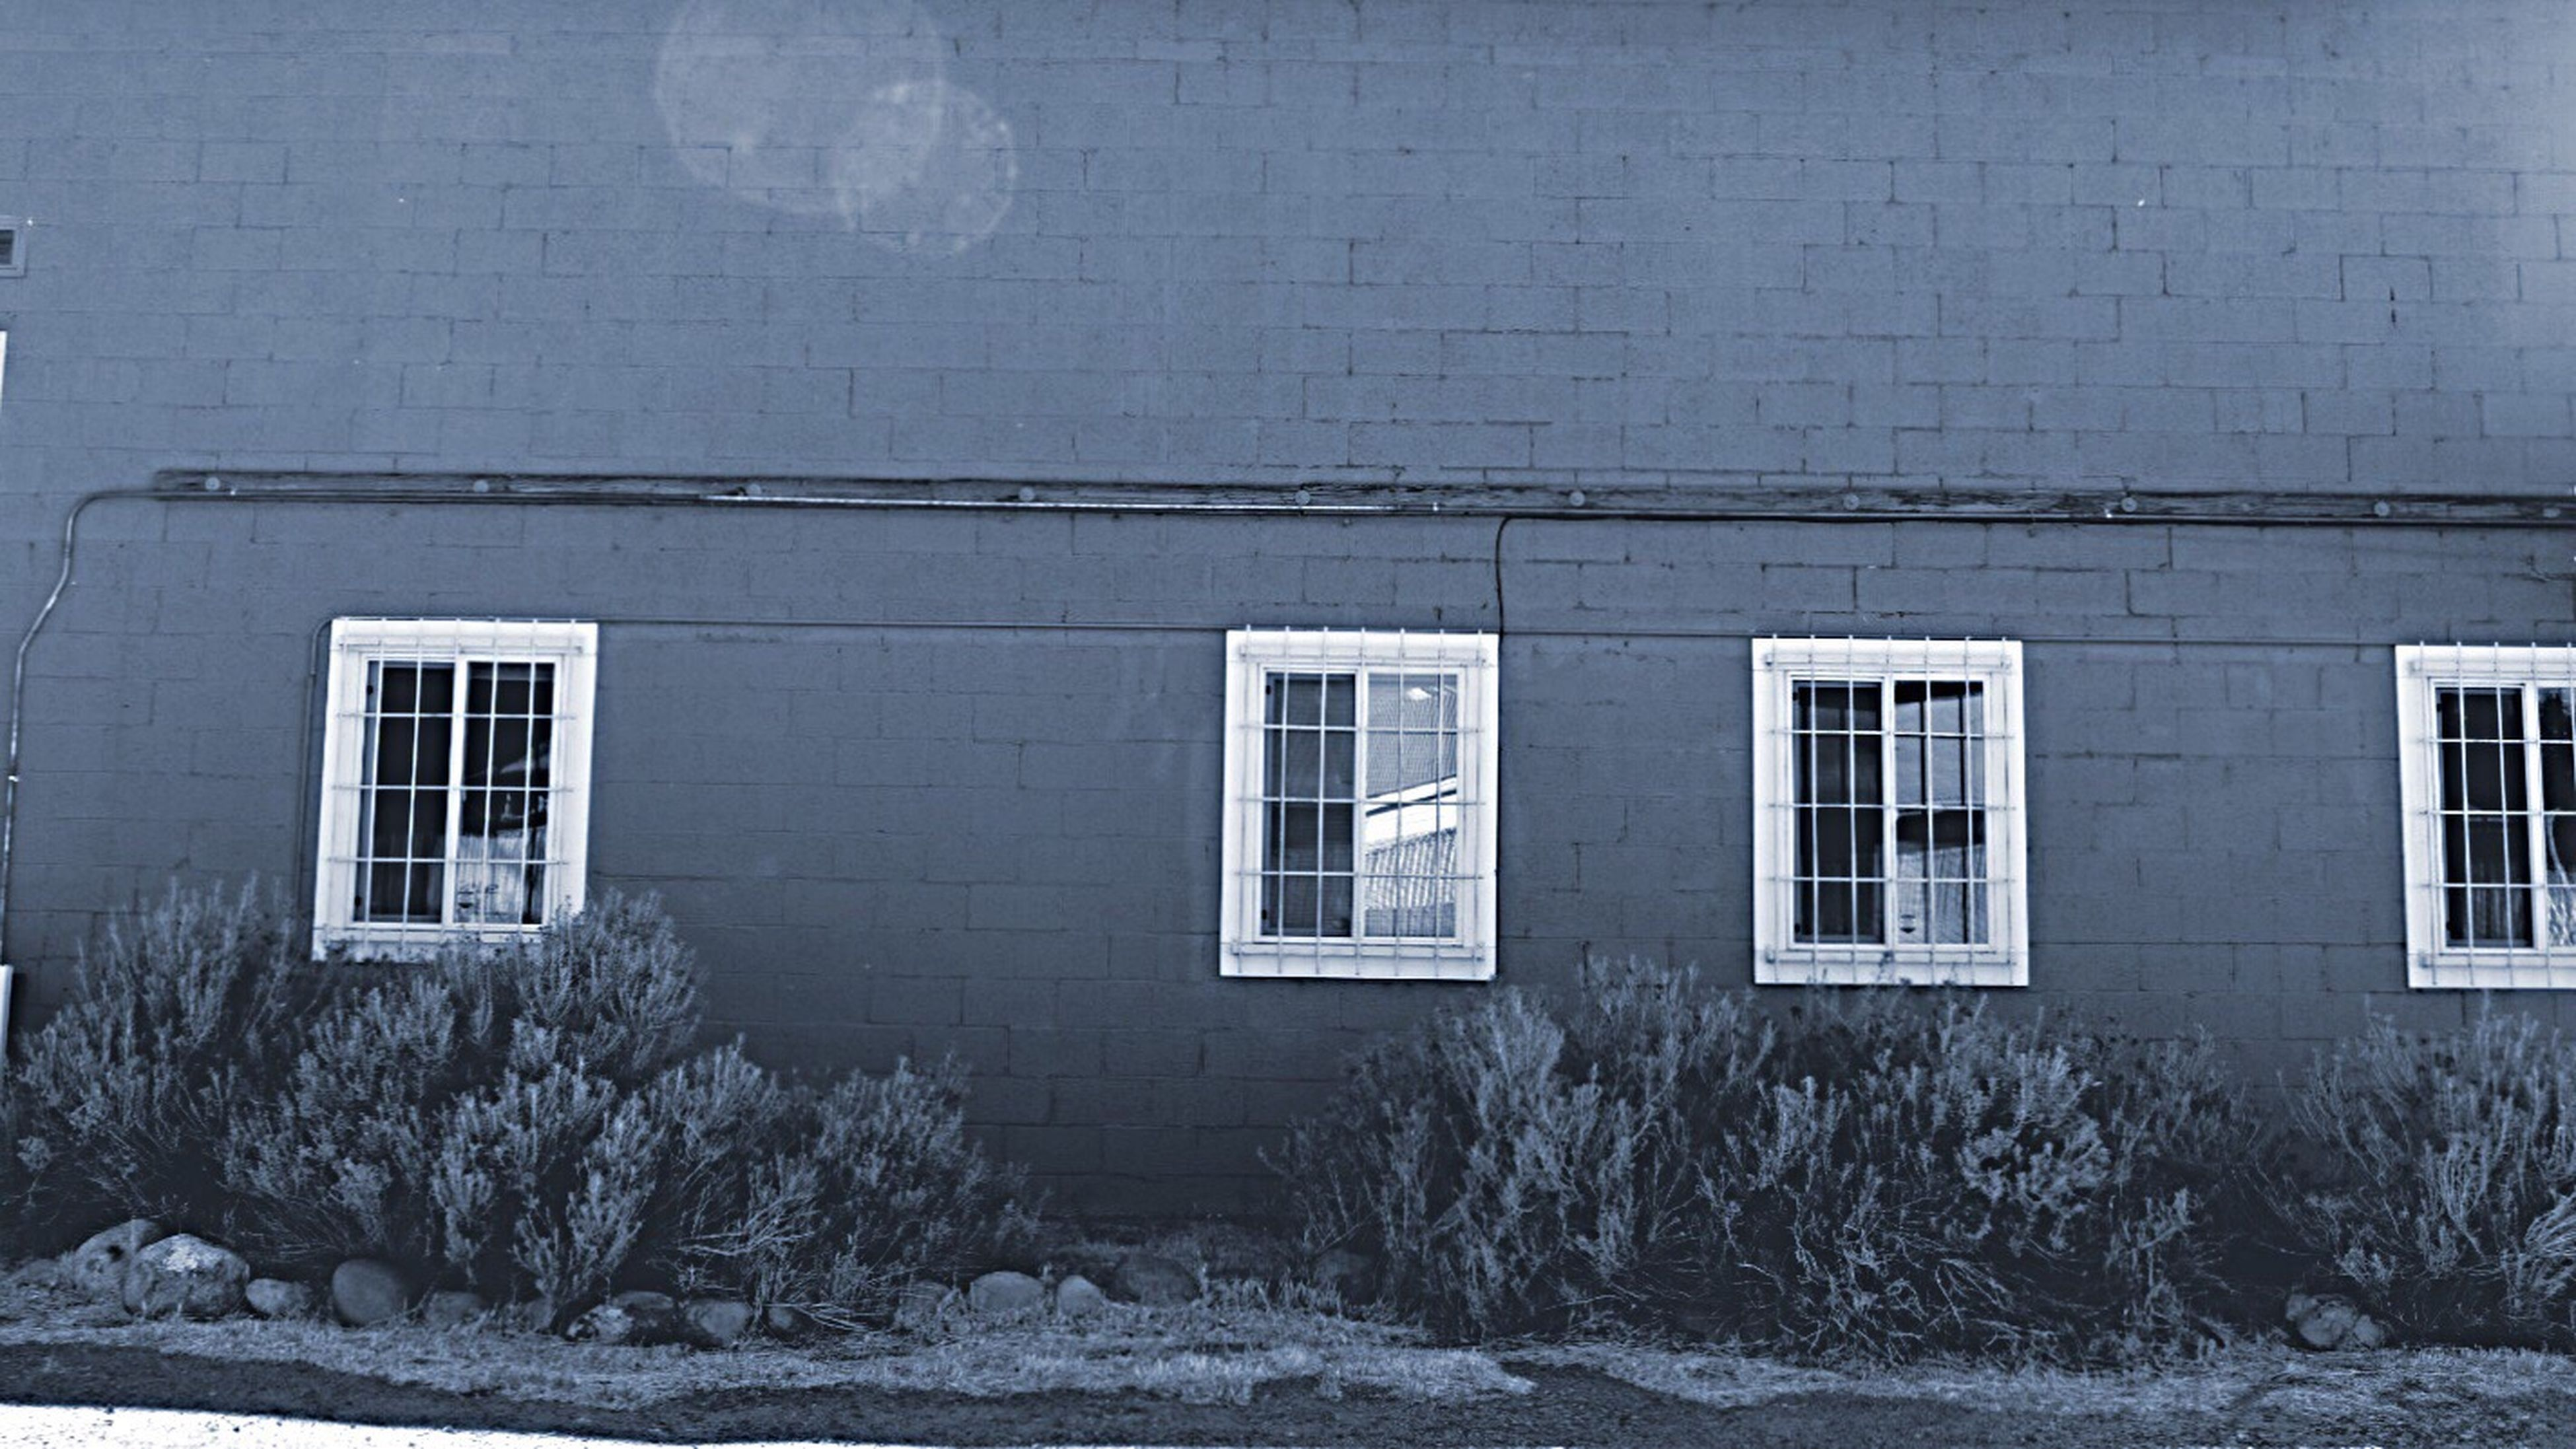 window, architecture, built structure, building exterior, winter, snow, cold temperature, no people, day, outdoors, nature